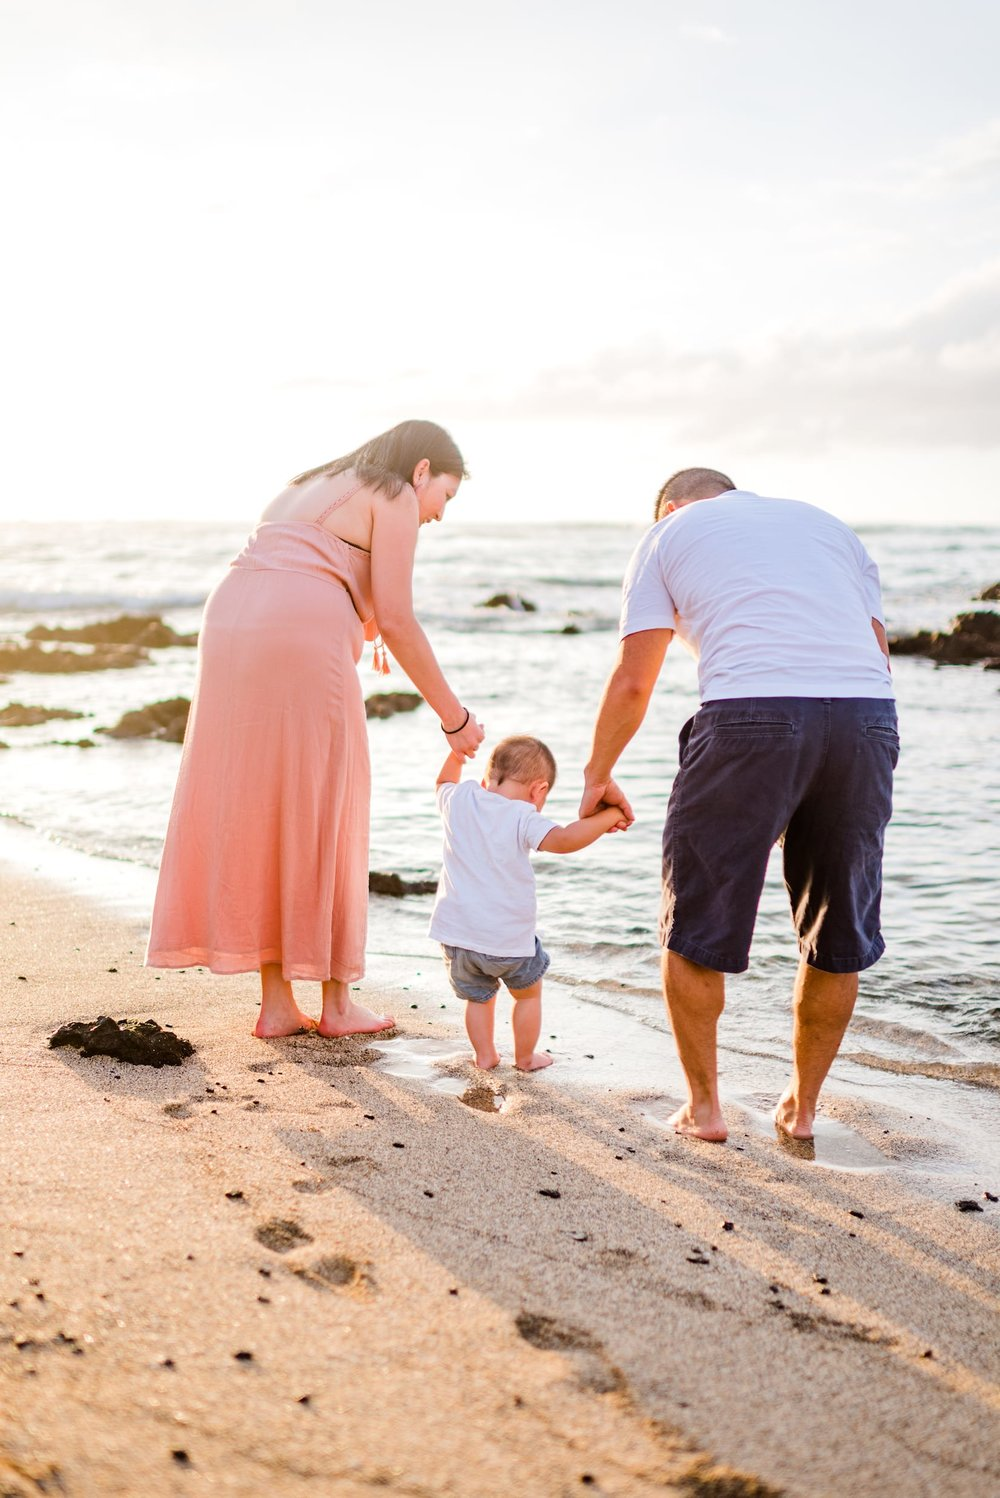 Hilton-Waikoloa-Village-Family-Photographer-Hawaii-02.jpg